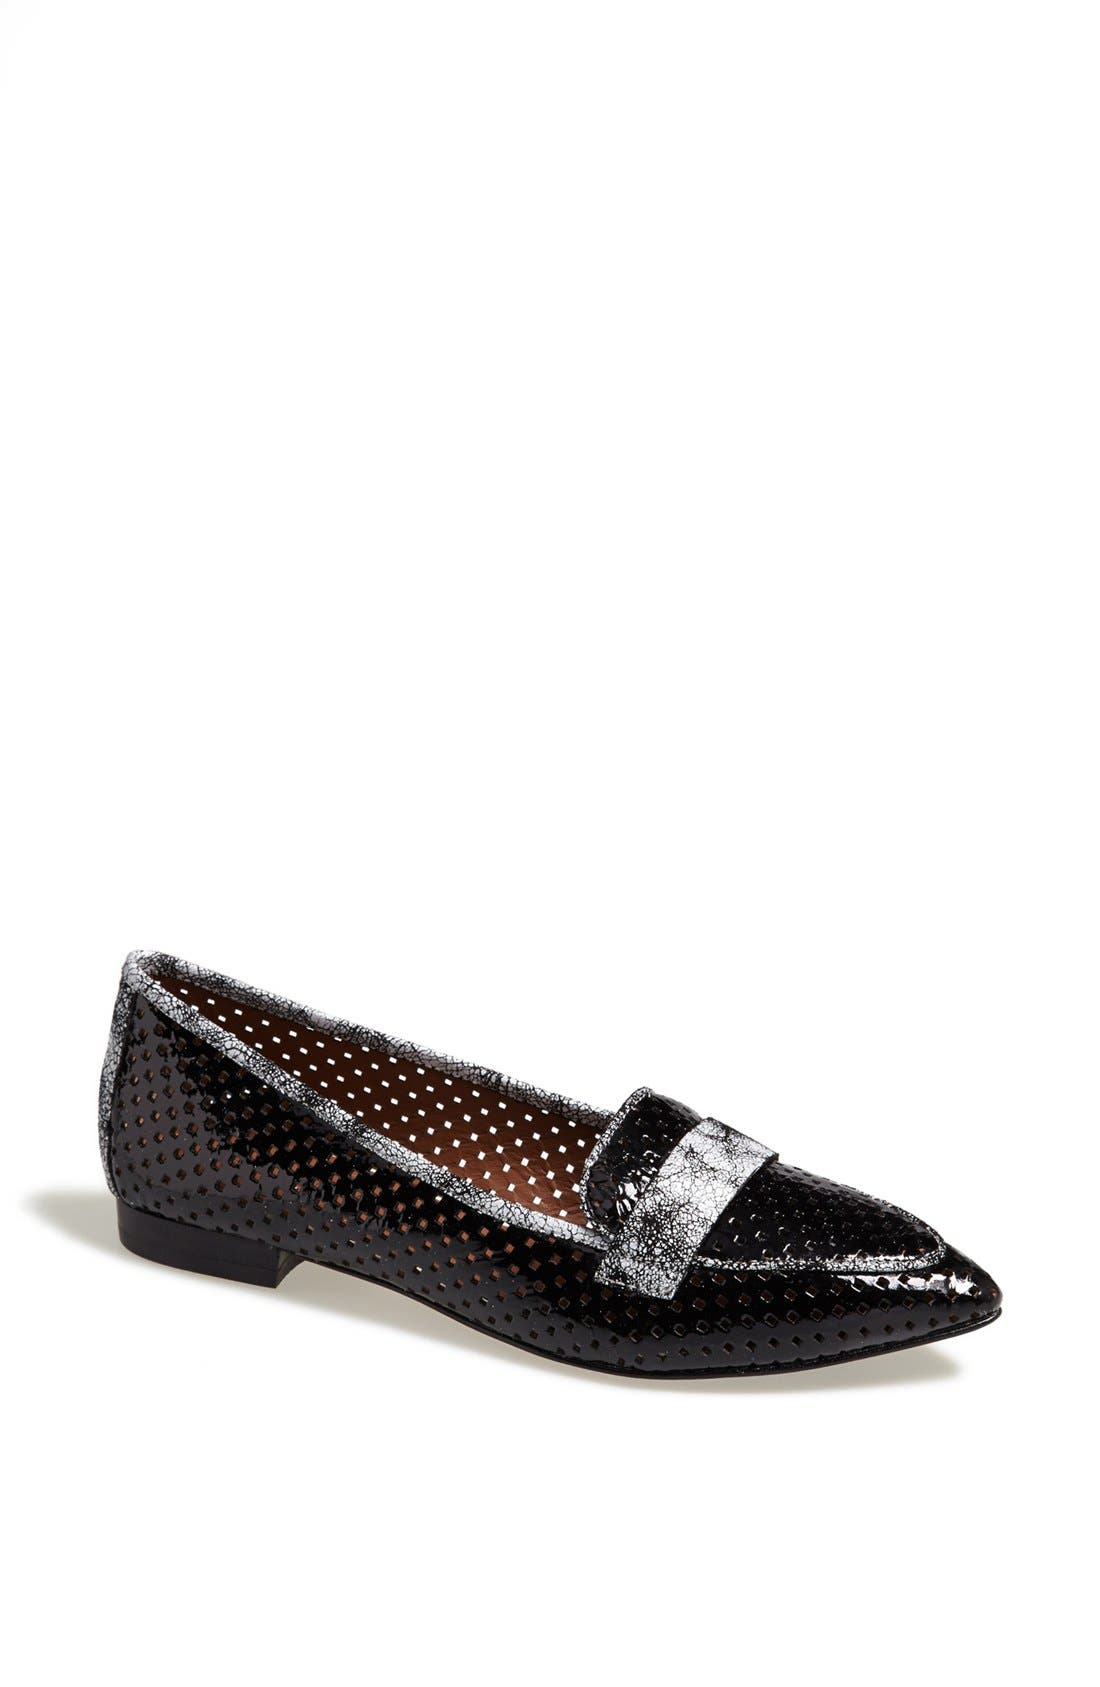 Alternate Image 1 Selected - Donald J Pliner 'Ava' Pointed Toe Flat